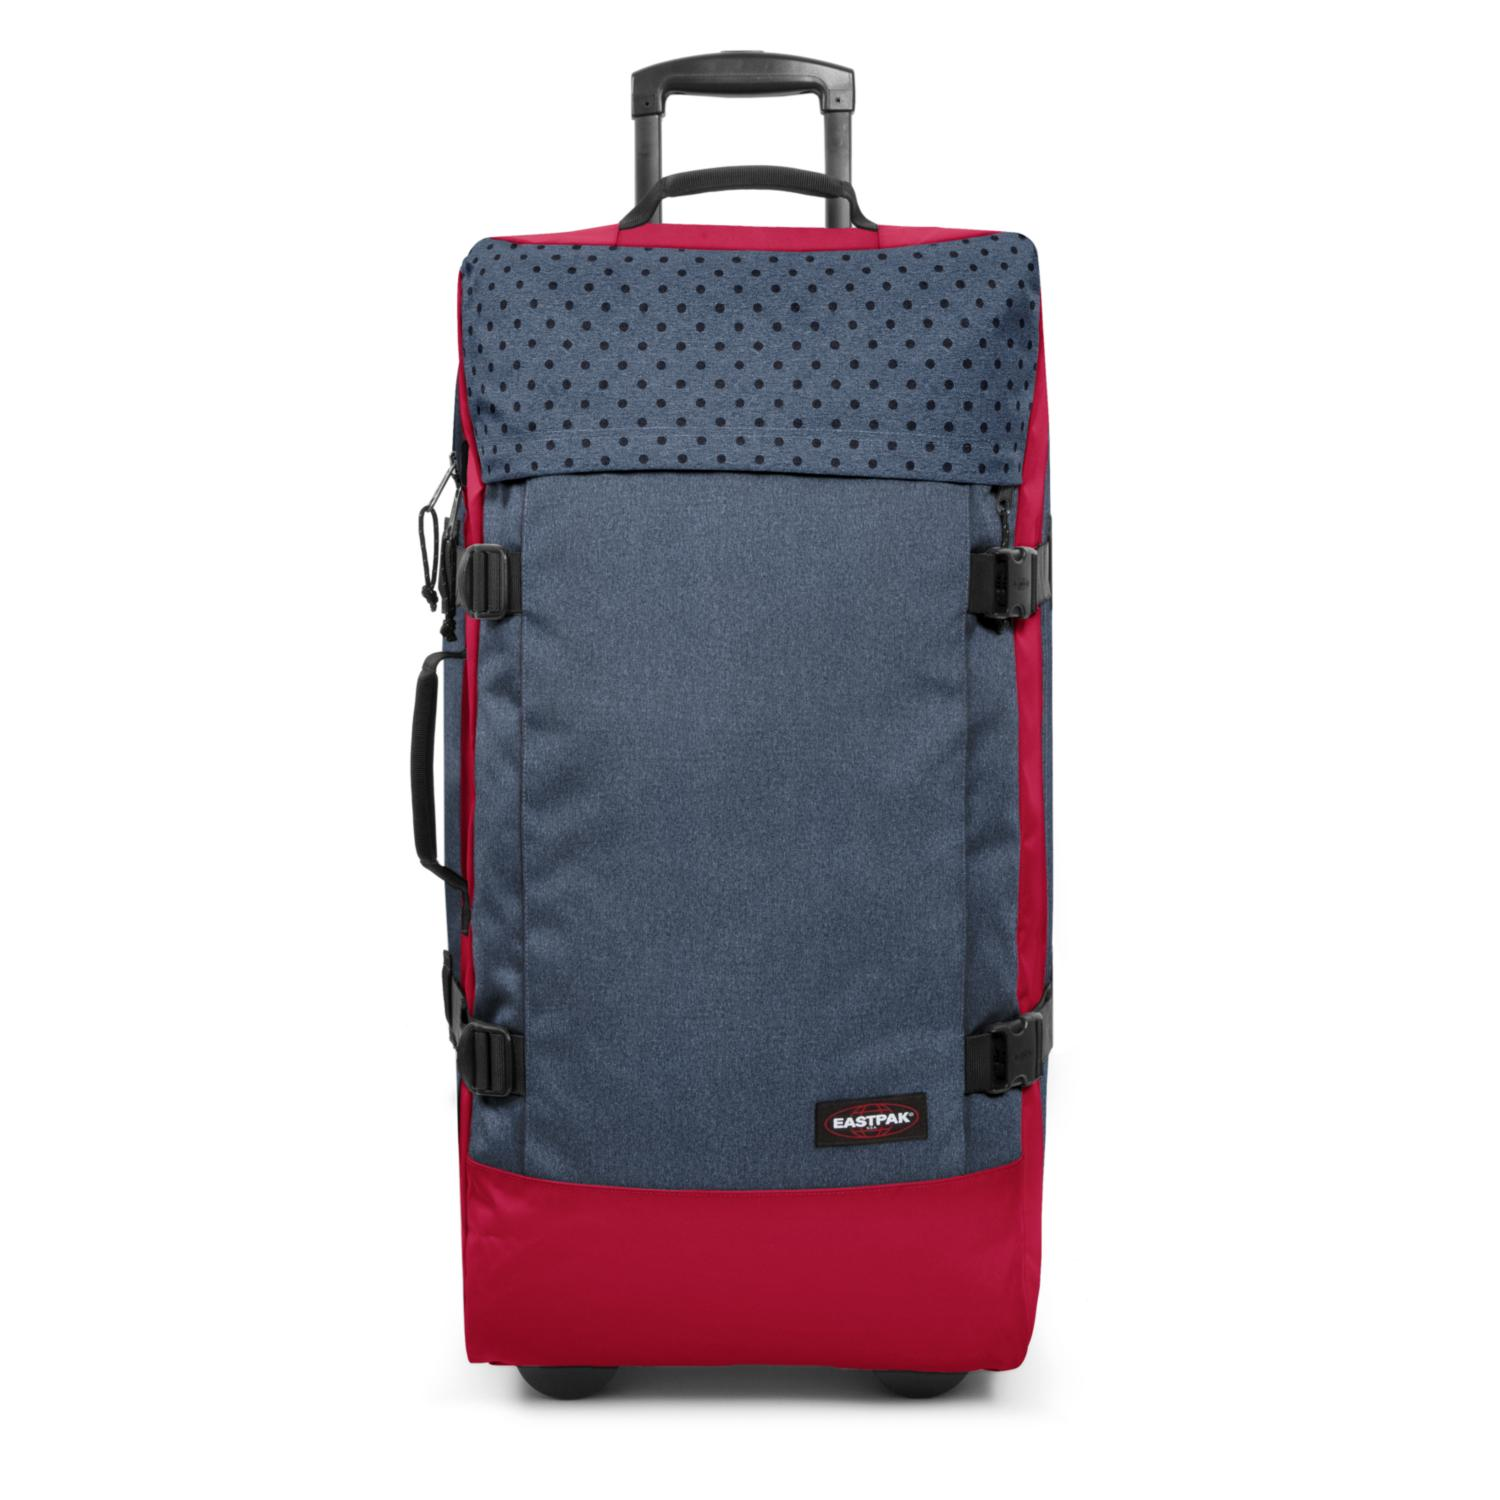 Eastpak Trolley-Reisetasche Tranverz L Blau Mix Dot